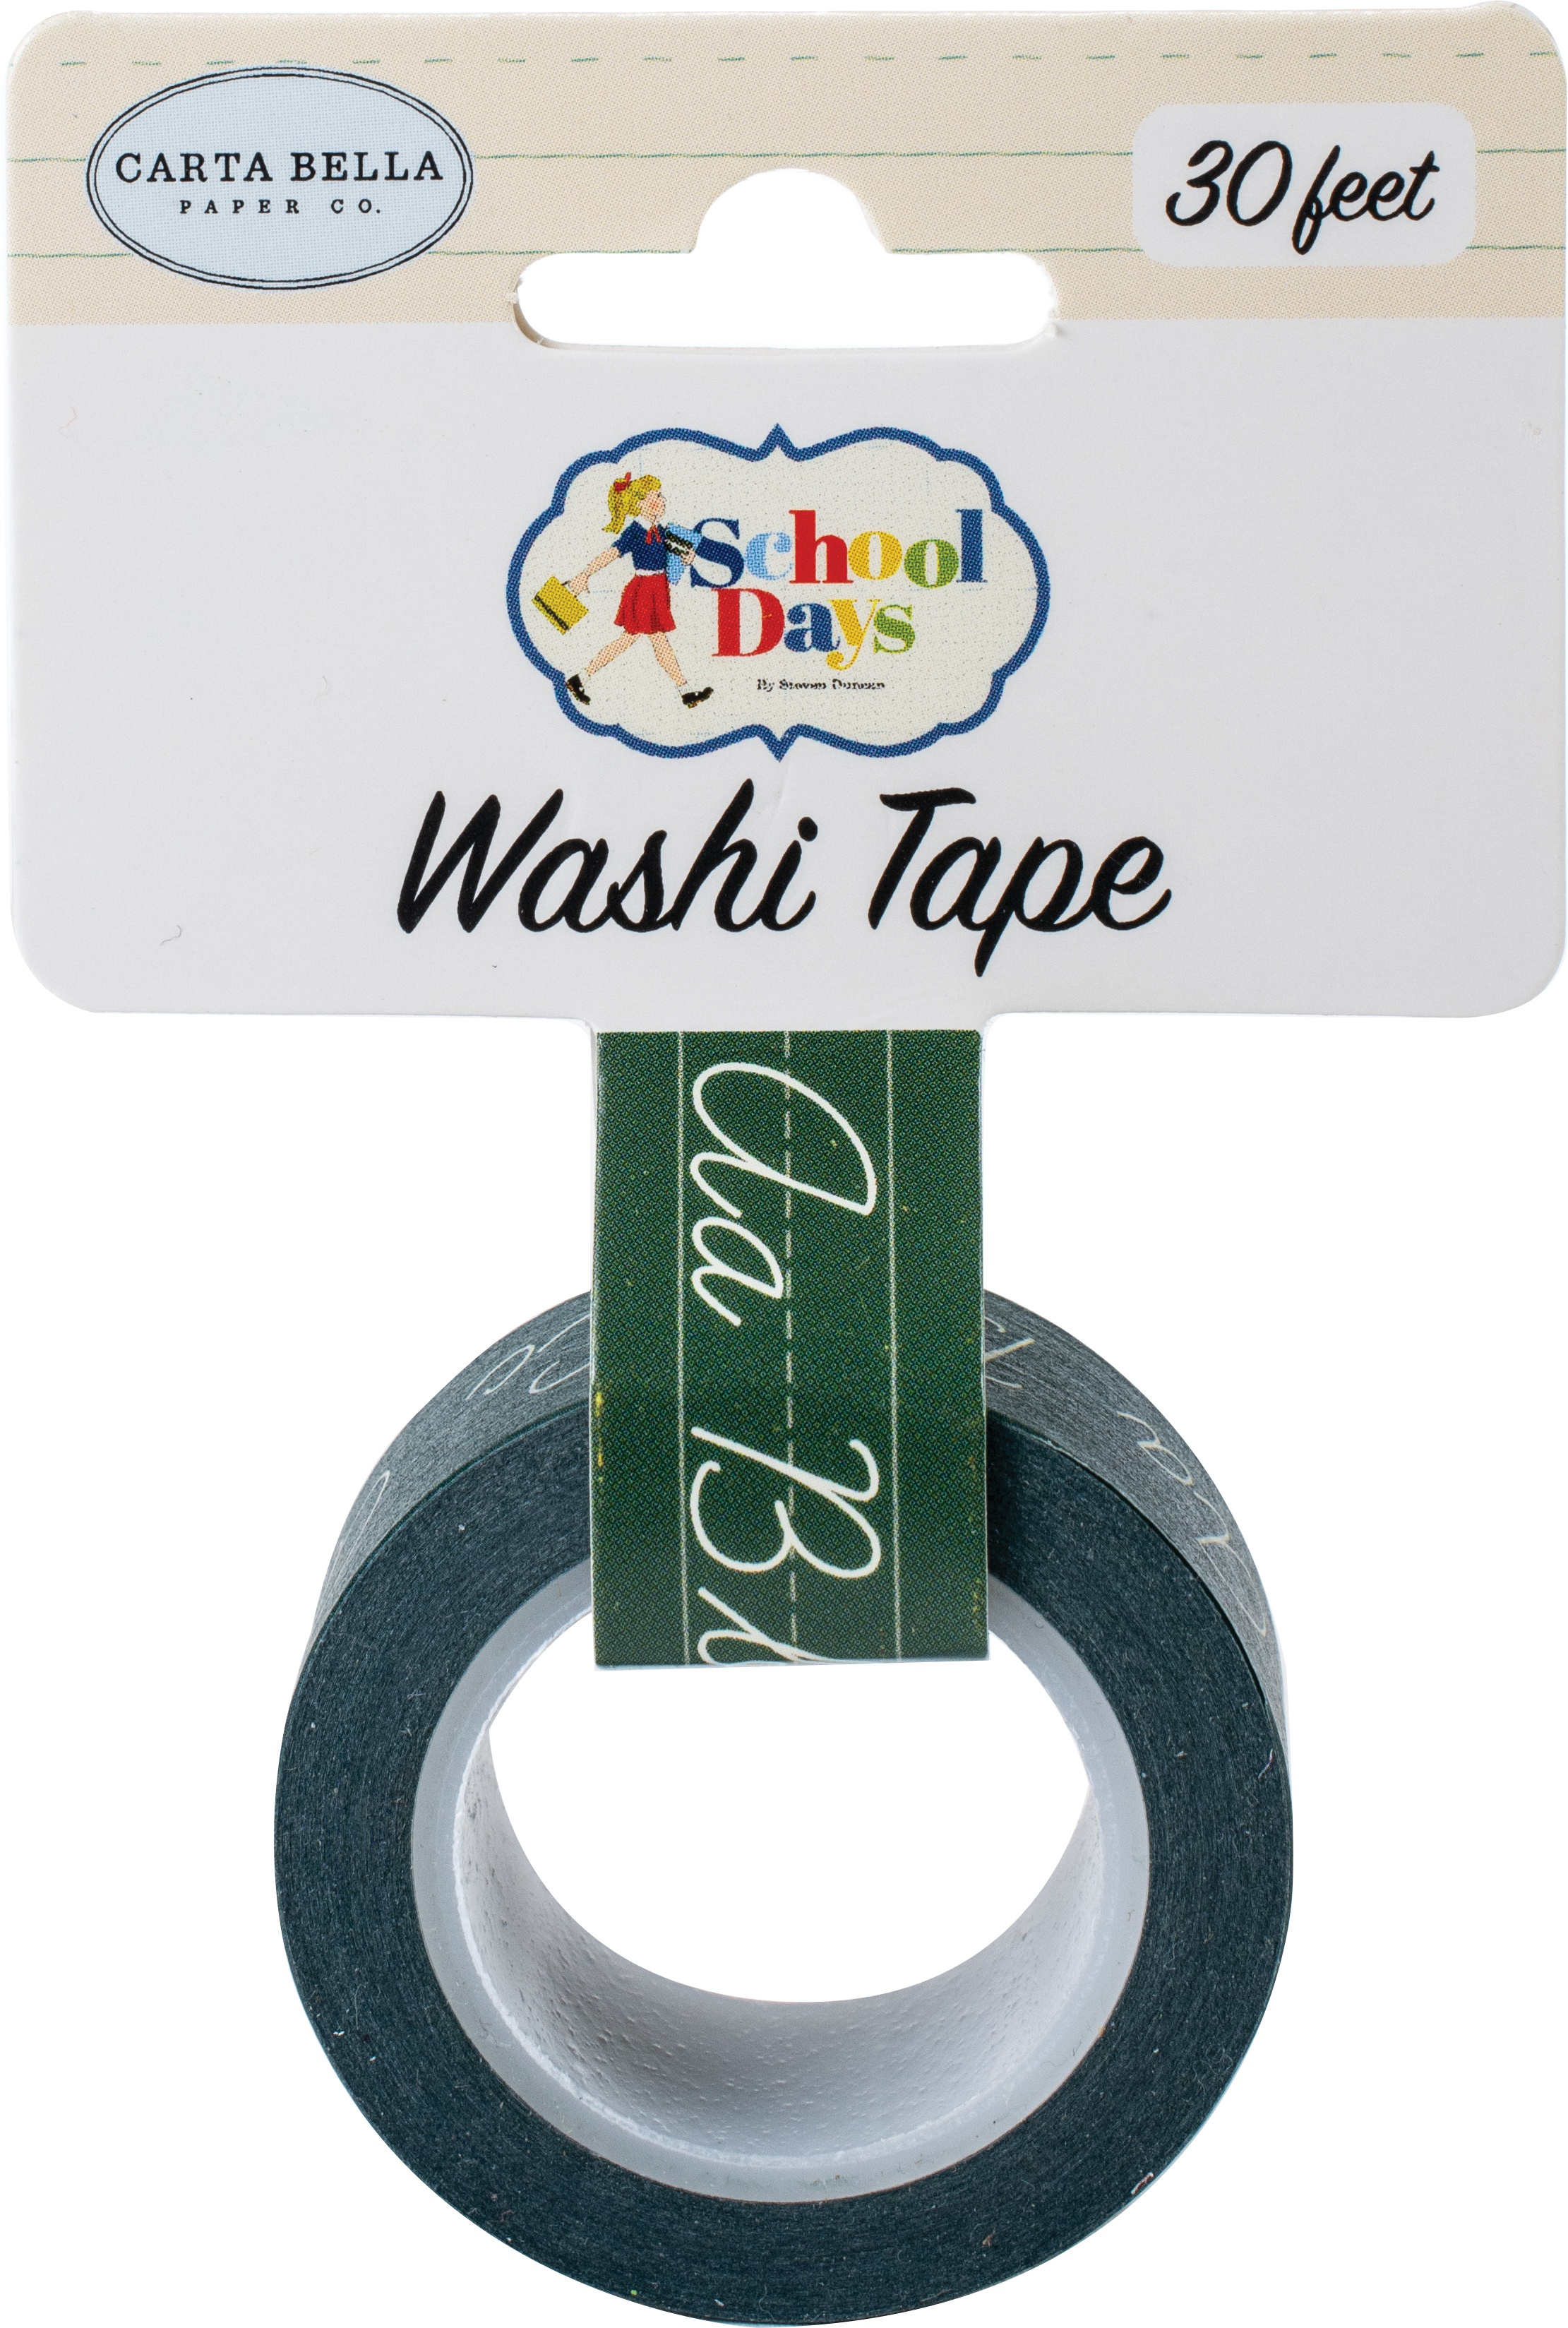 CB School Days ABC Washi Tape